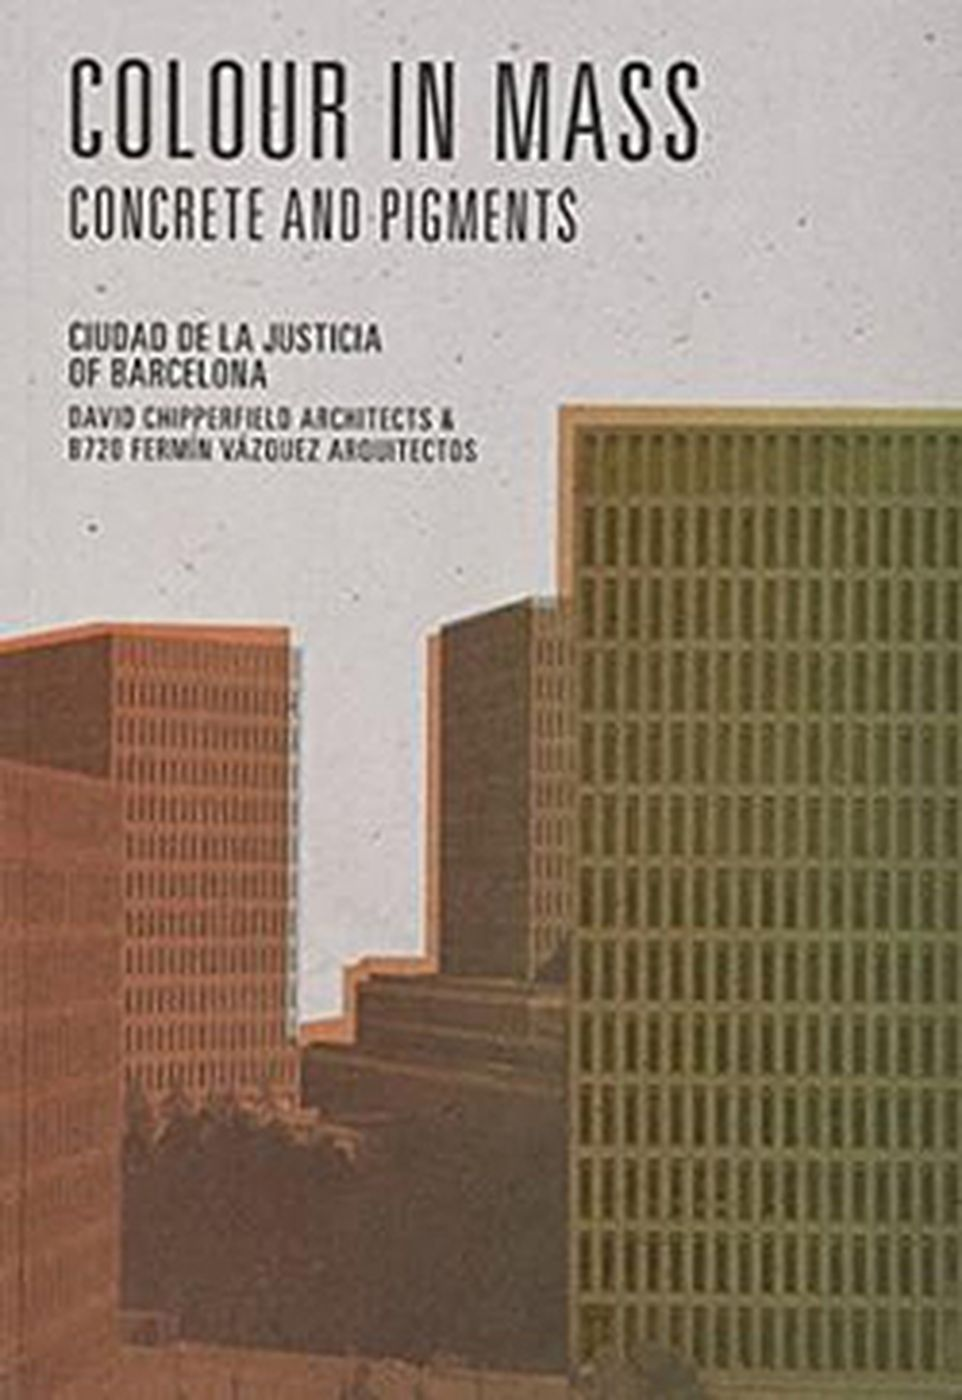 Concrete and Pigments on the New City of Justice of Barcelona